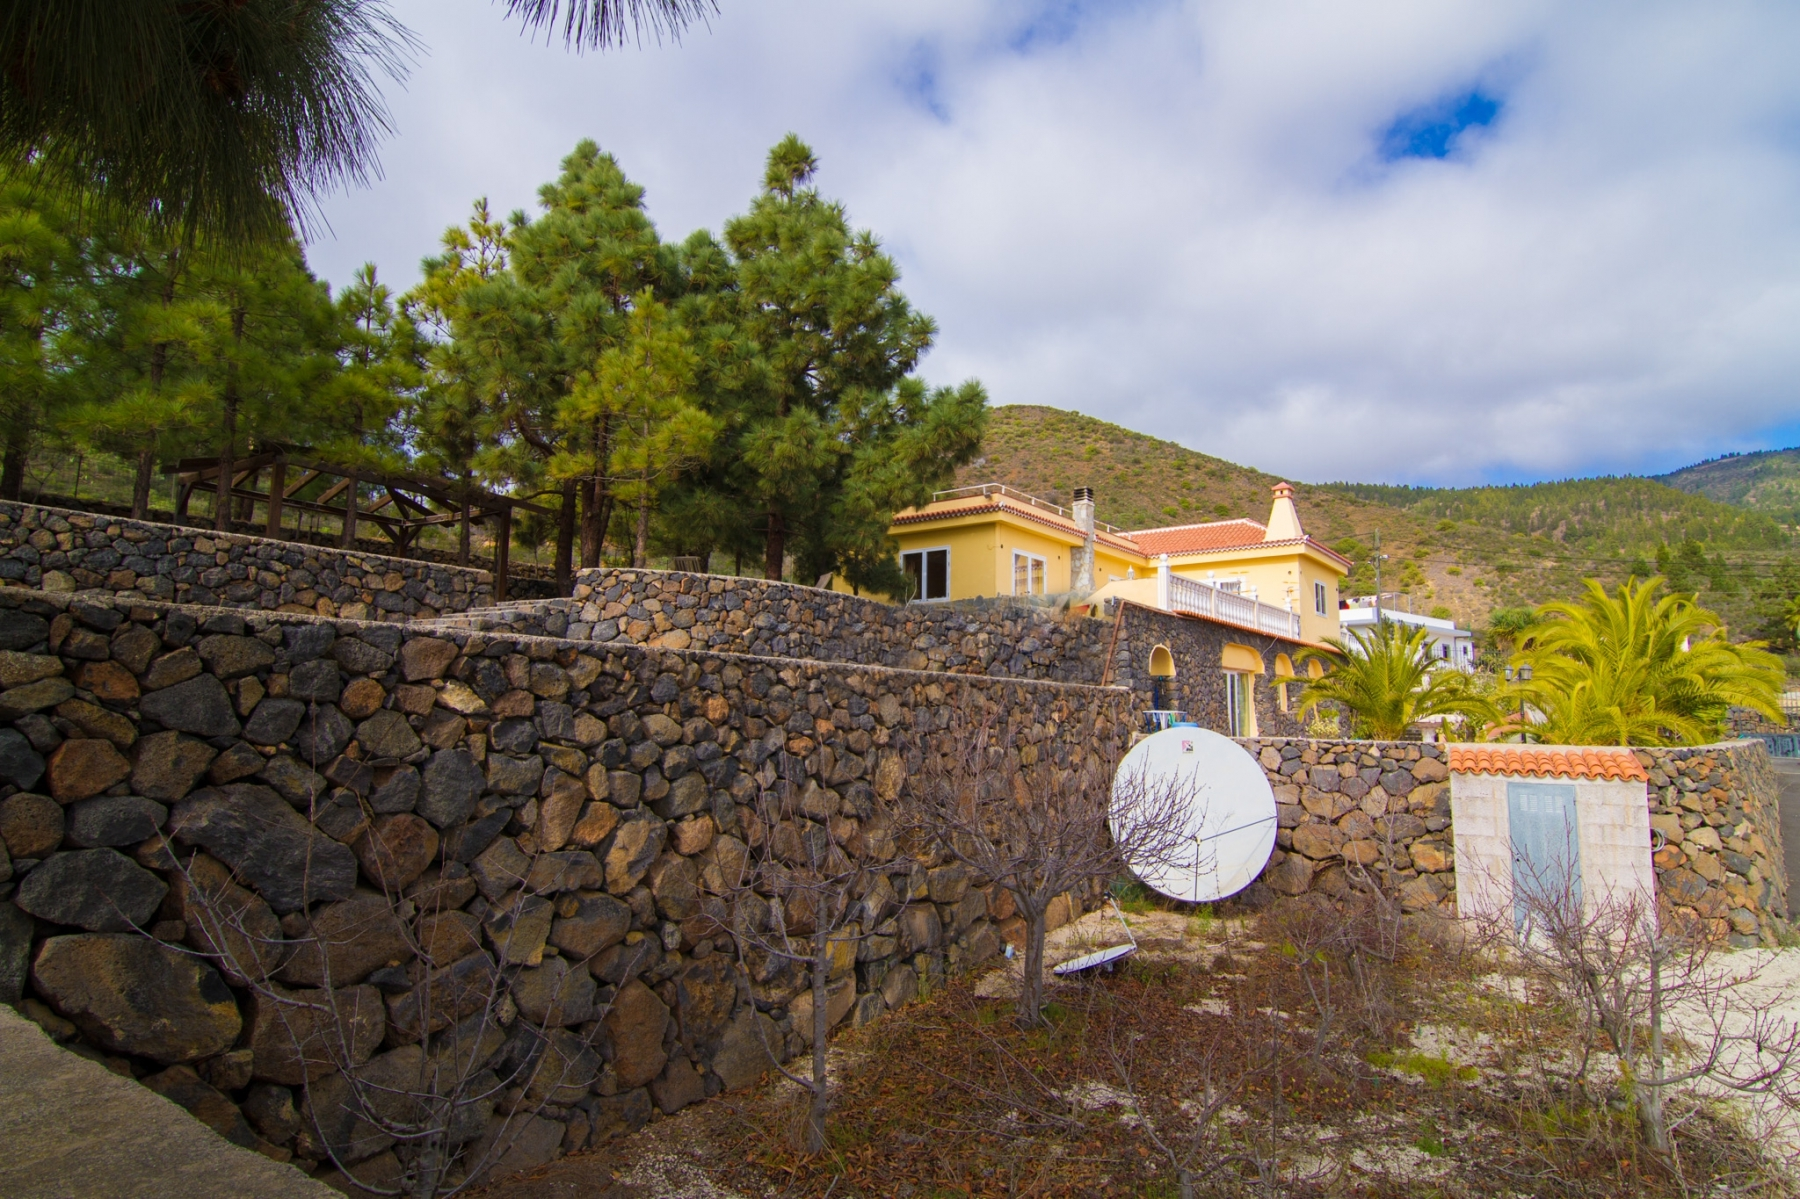 Properties for Sale in Tenerife, Canary Islands, Spain | SylkWayStar Real Estate. Finca with vineyard - Cruz de Tea - Granadilla de Abona . Image-21838